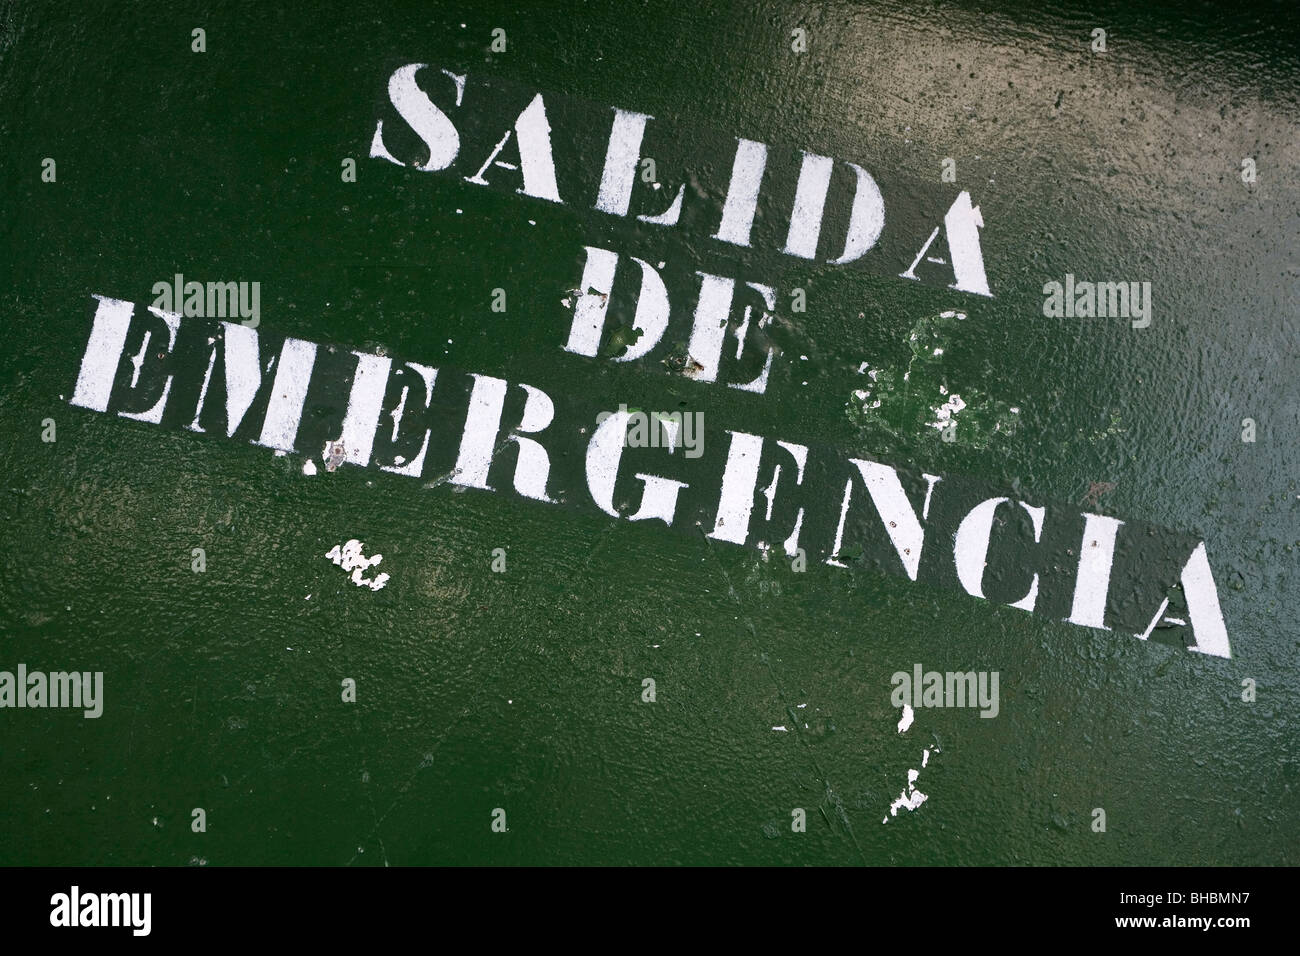 A sign clearly marks an emergency exit in the town of Puerto de la Cruz on the island of Tenerife. - Stock Image